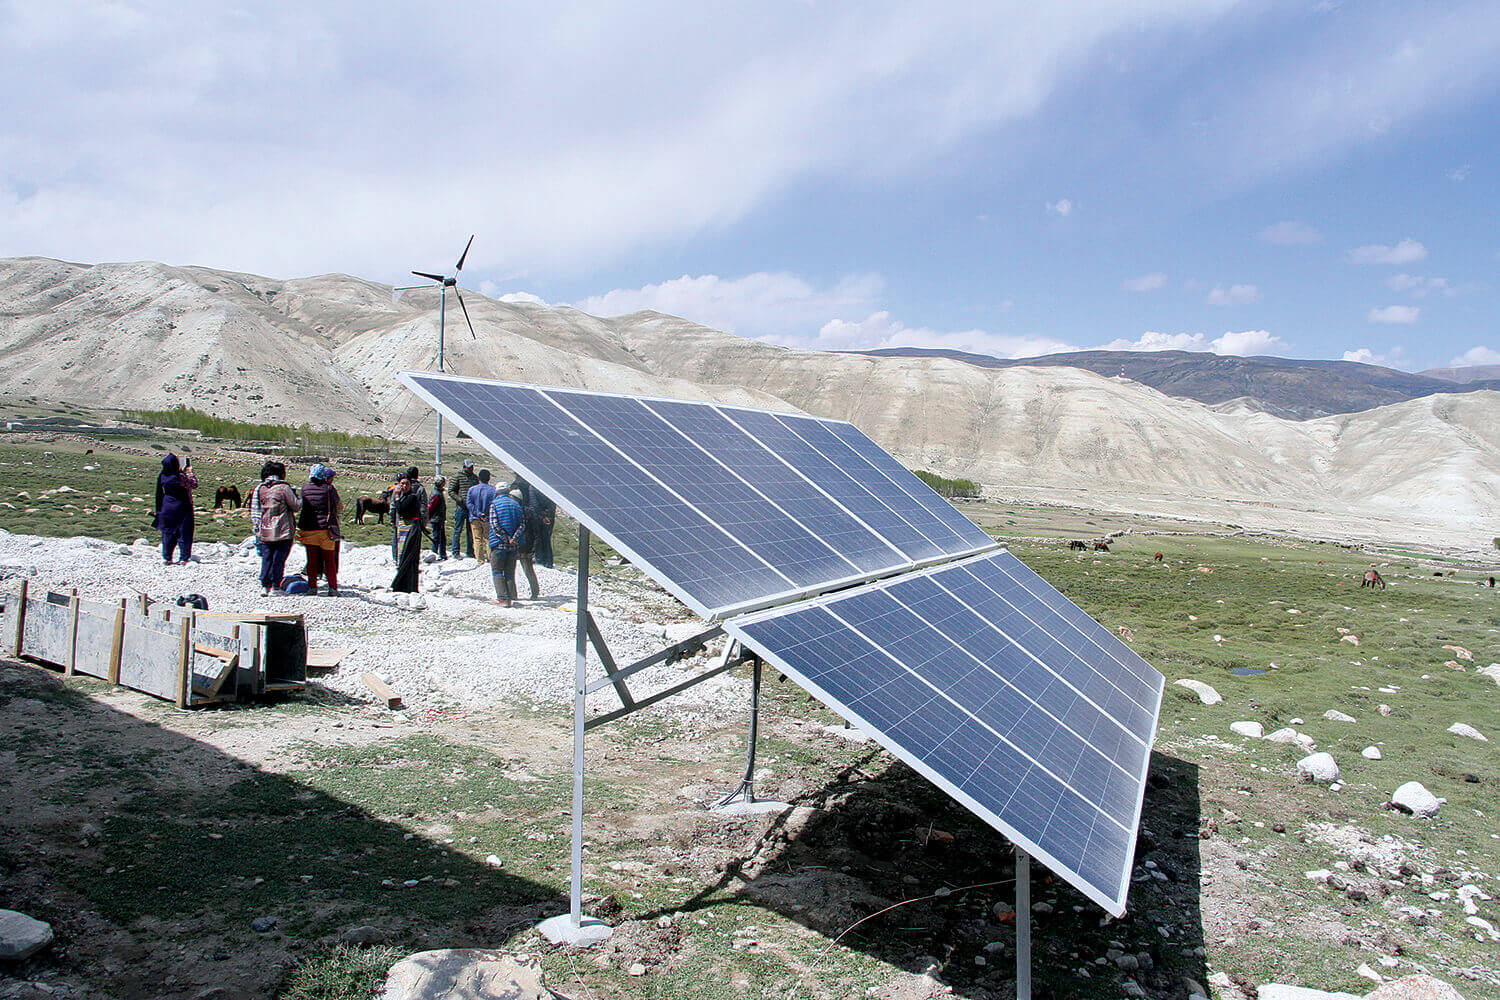 An energy windfall for Nepal?